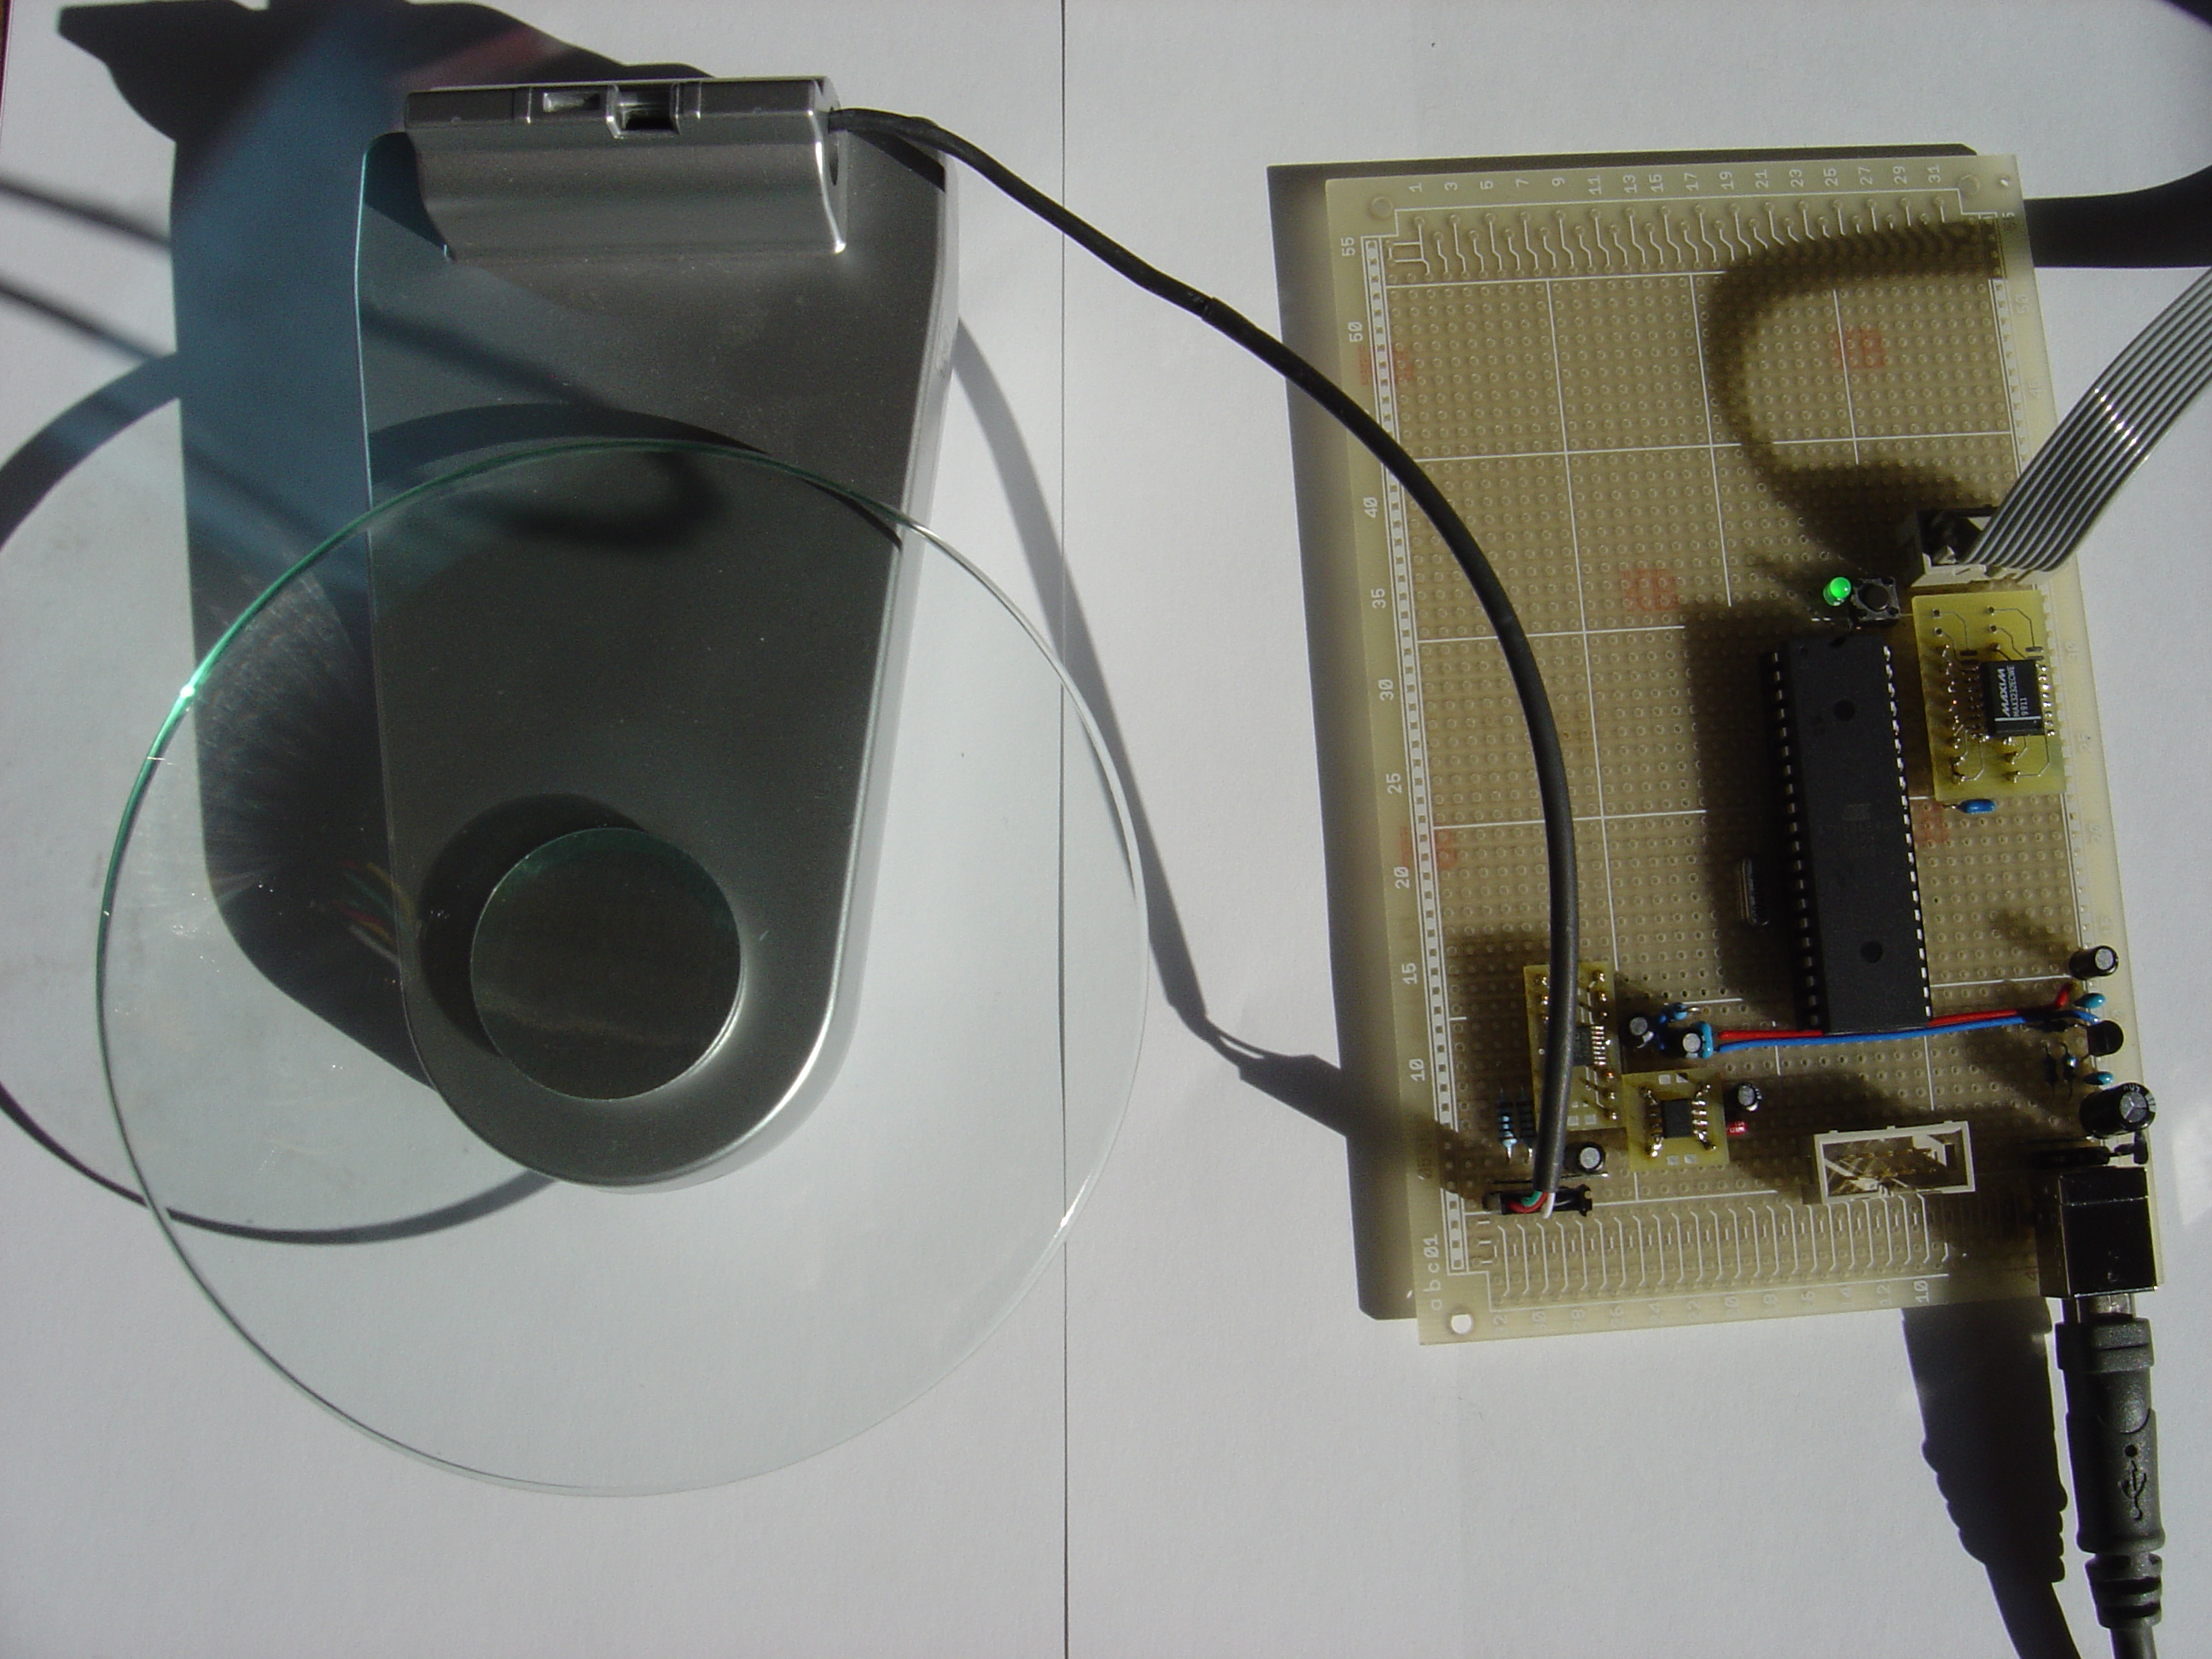 Category Measurement Uwes Tinkerblog Load Cell Circuit Foto Of The Prototype A From 5kg Kitchen Scale On Left